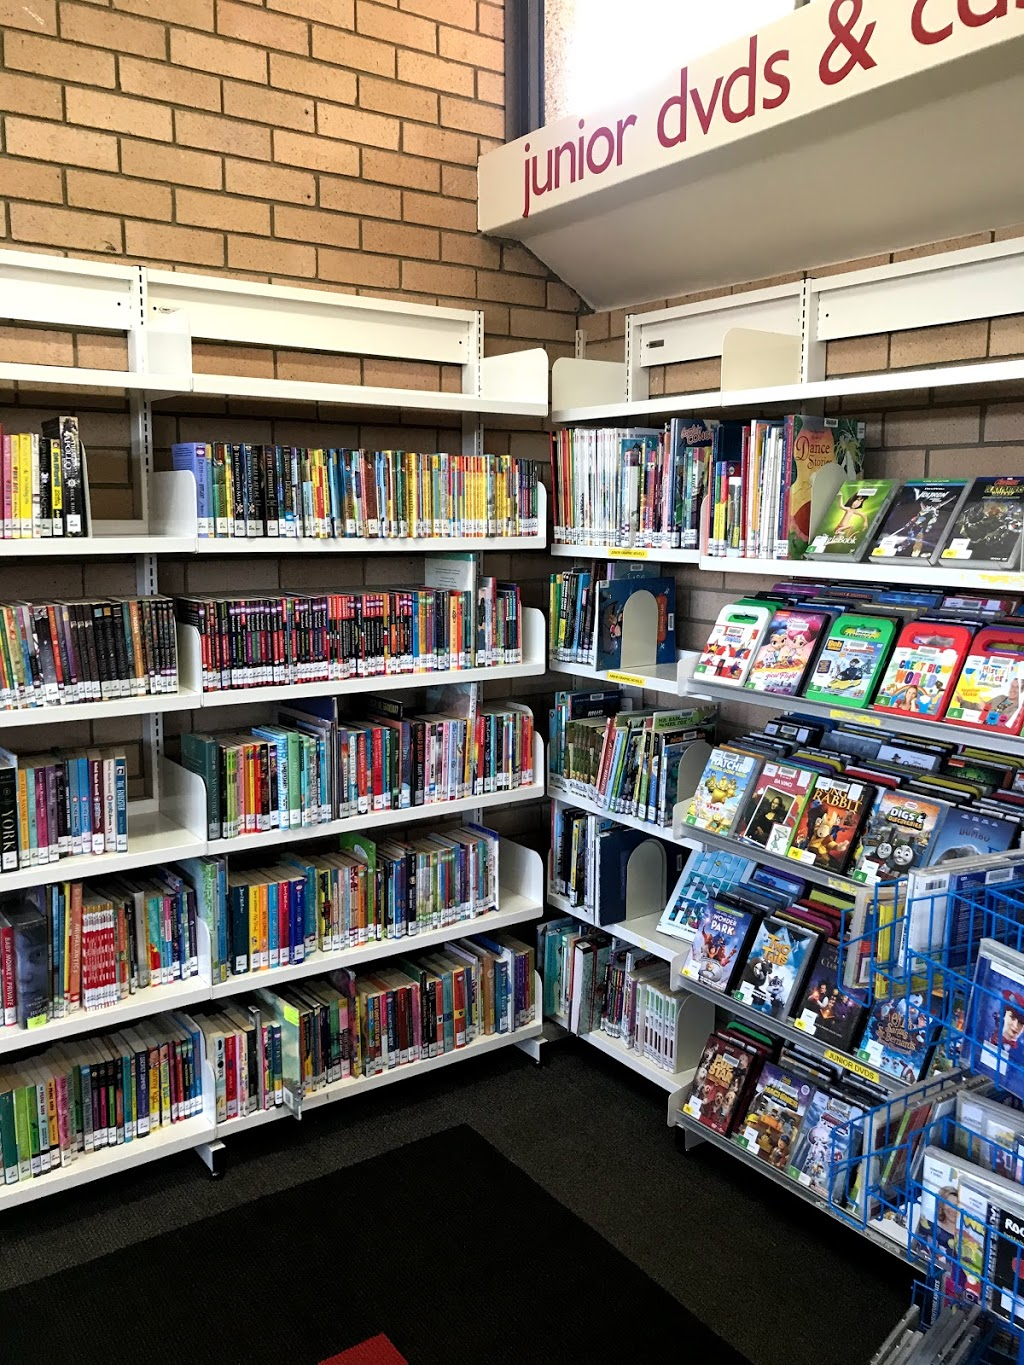 South Hurstville Branch Library | library | 1 Allen St, South Hurstville NSW 2221, Australia | 0293309529 OR +61 2 9330 9529